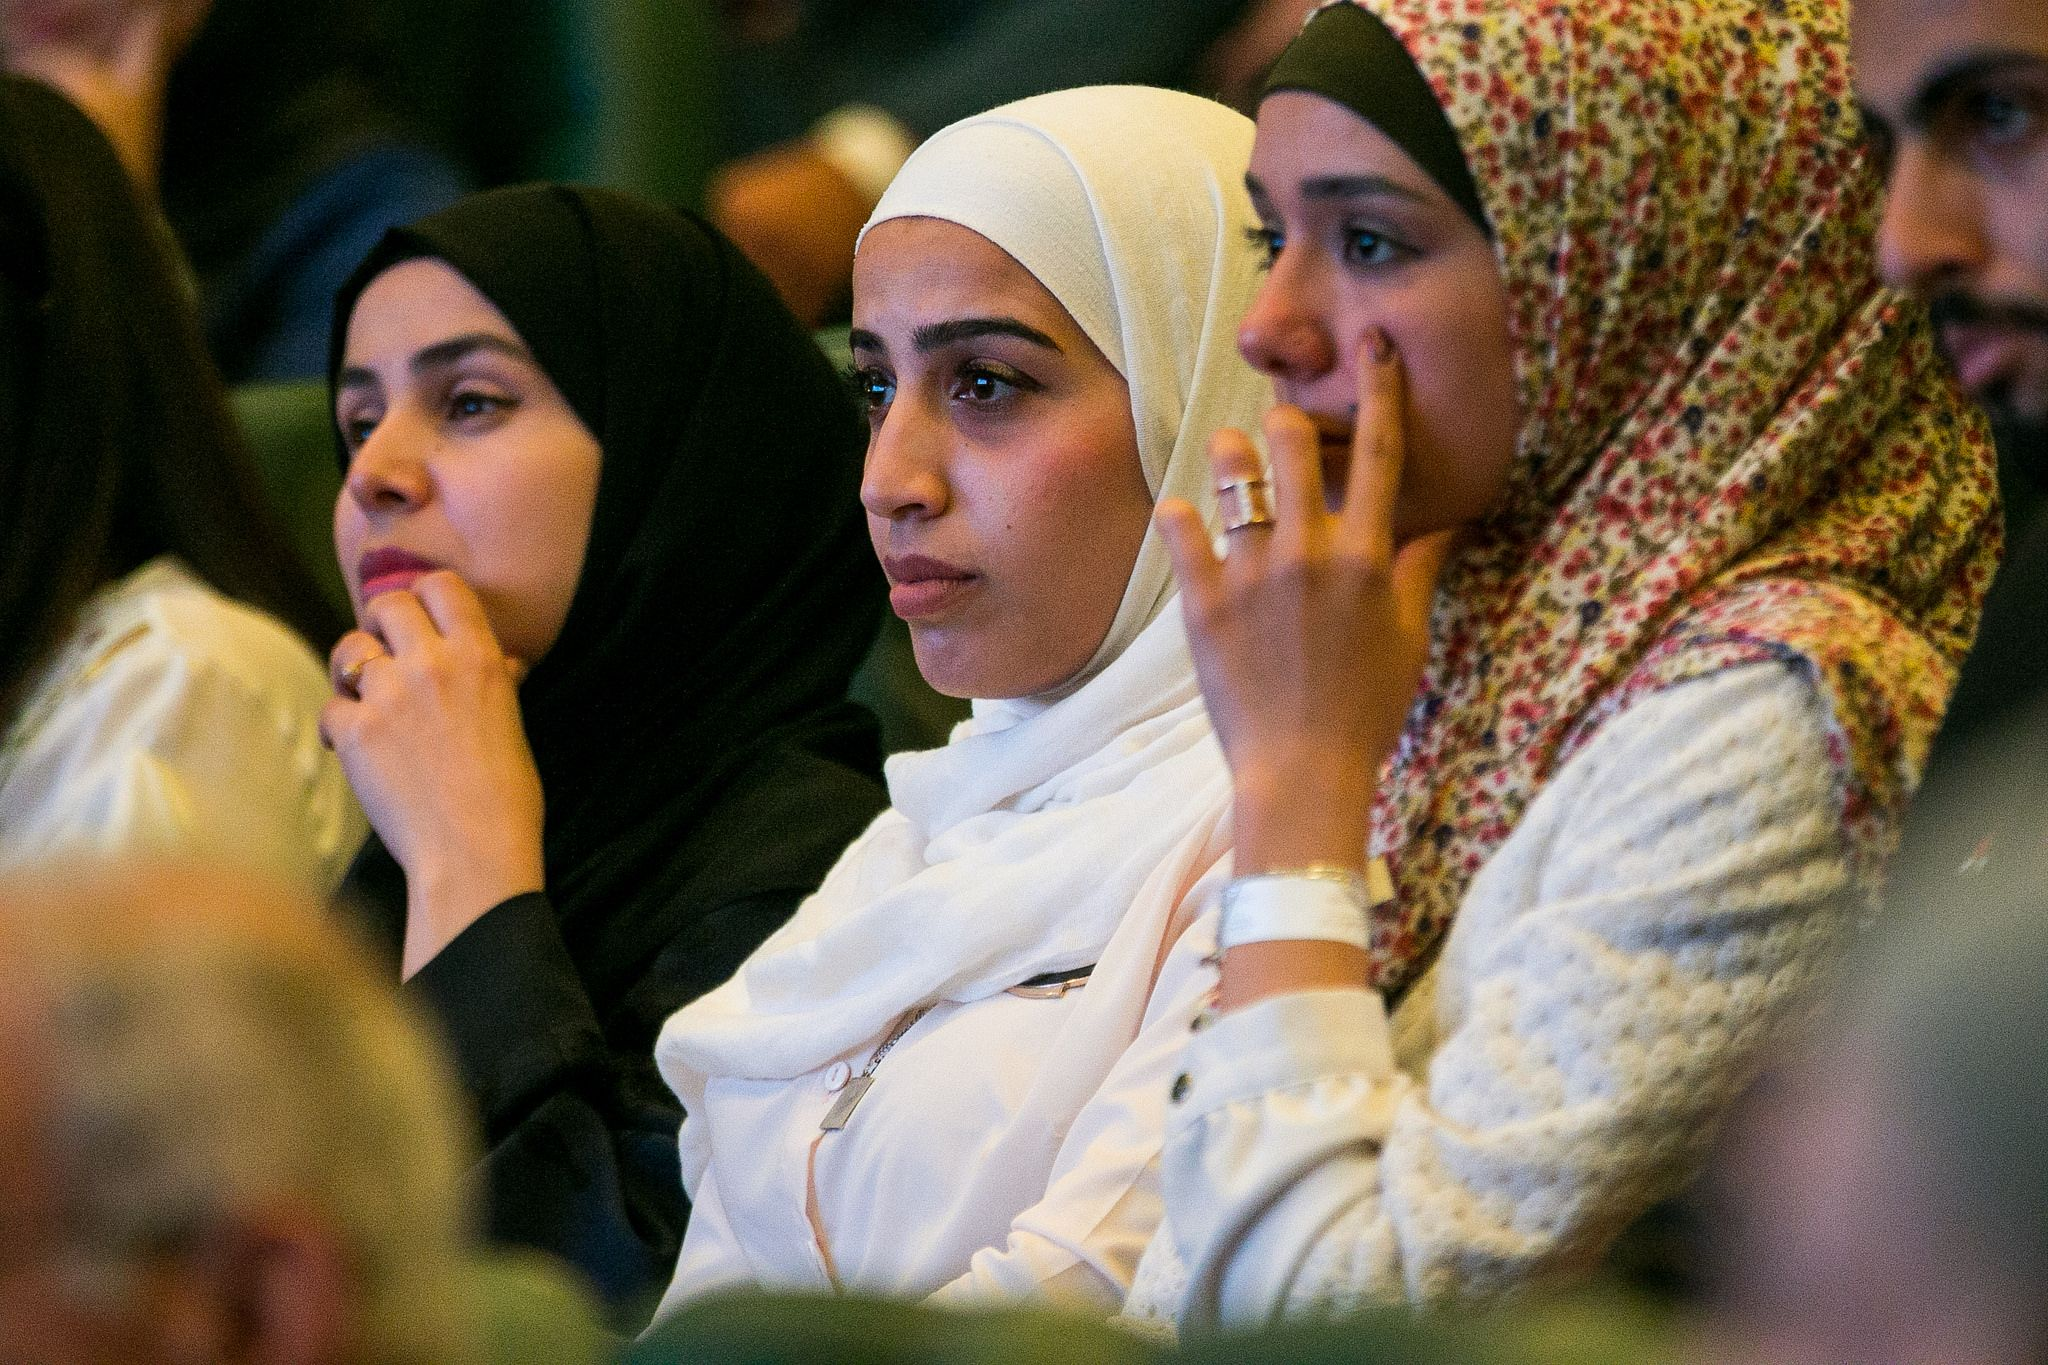 Increasing competitiveness in the Arab World